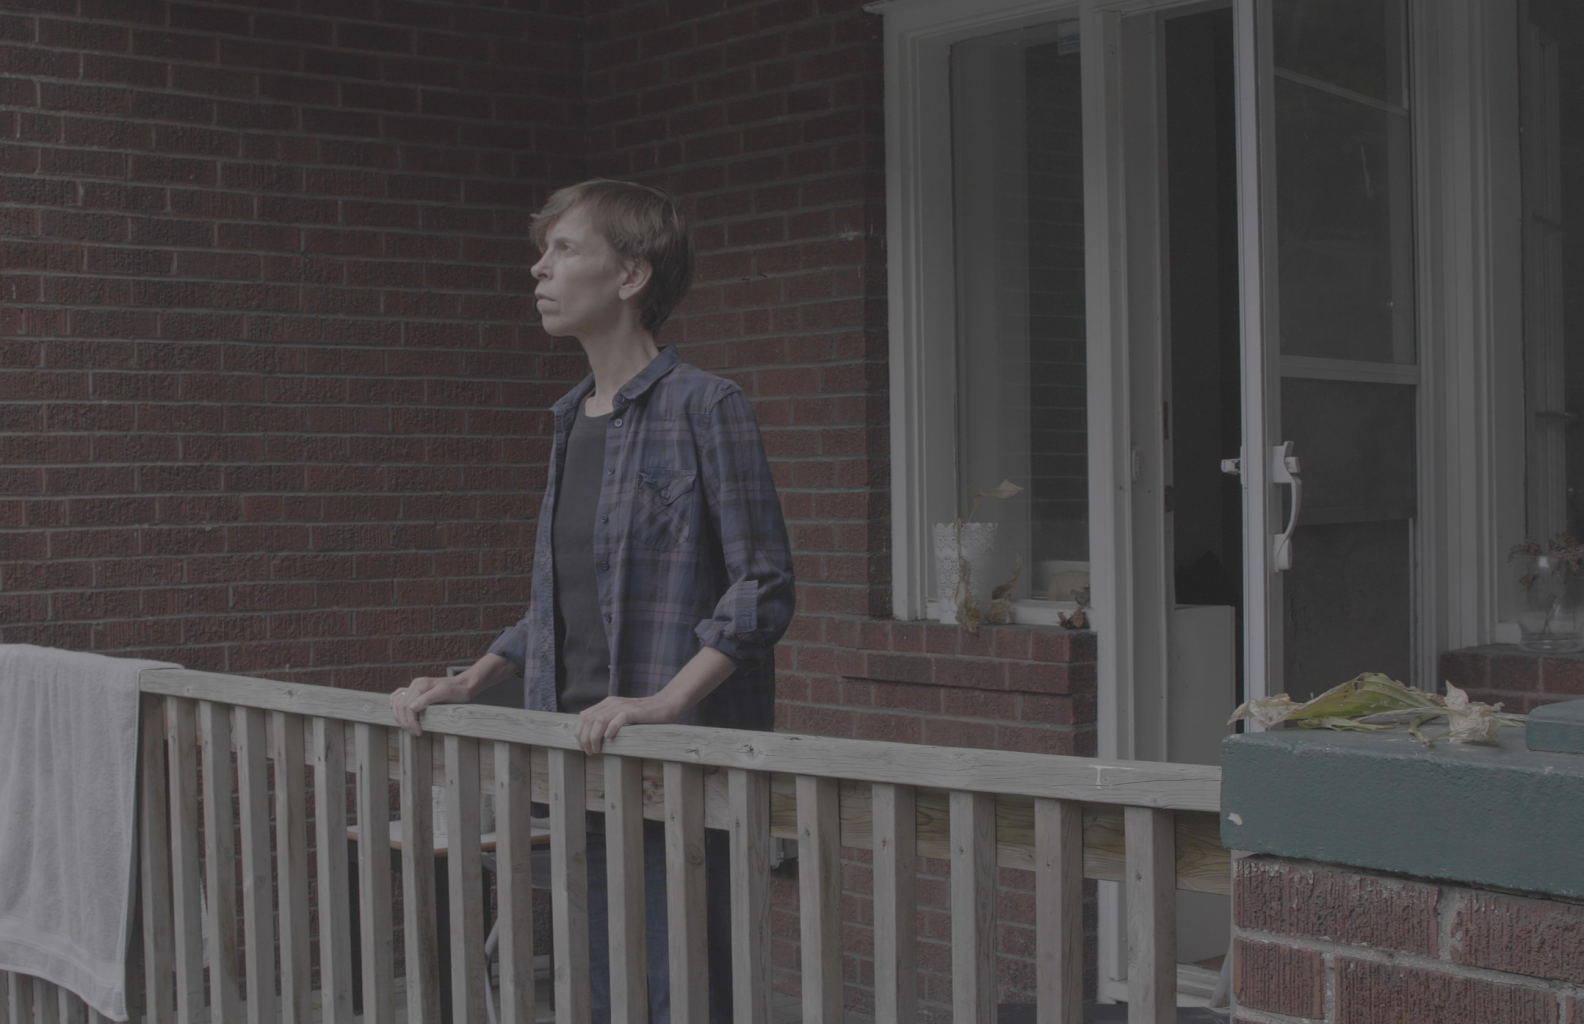 A photograph of Alex standing on her apartment balcony.  She is a white woman wearing a purple and blue plaid shirt over a black t-shirt and blue jeans. The balcony door is ajar. She faces out at the edge of it, and holds the wooden railing.